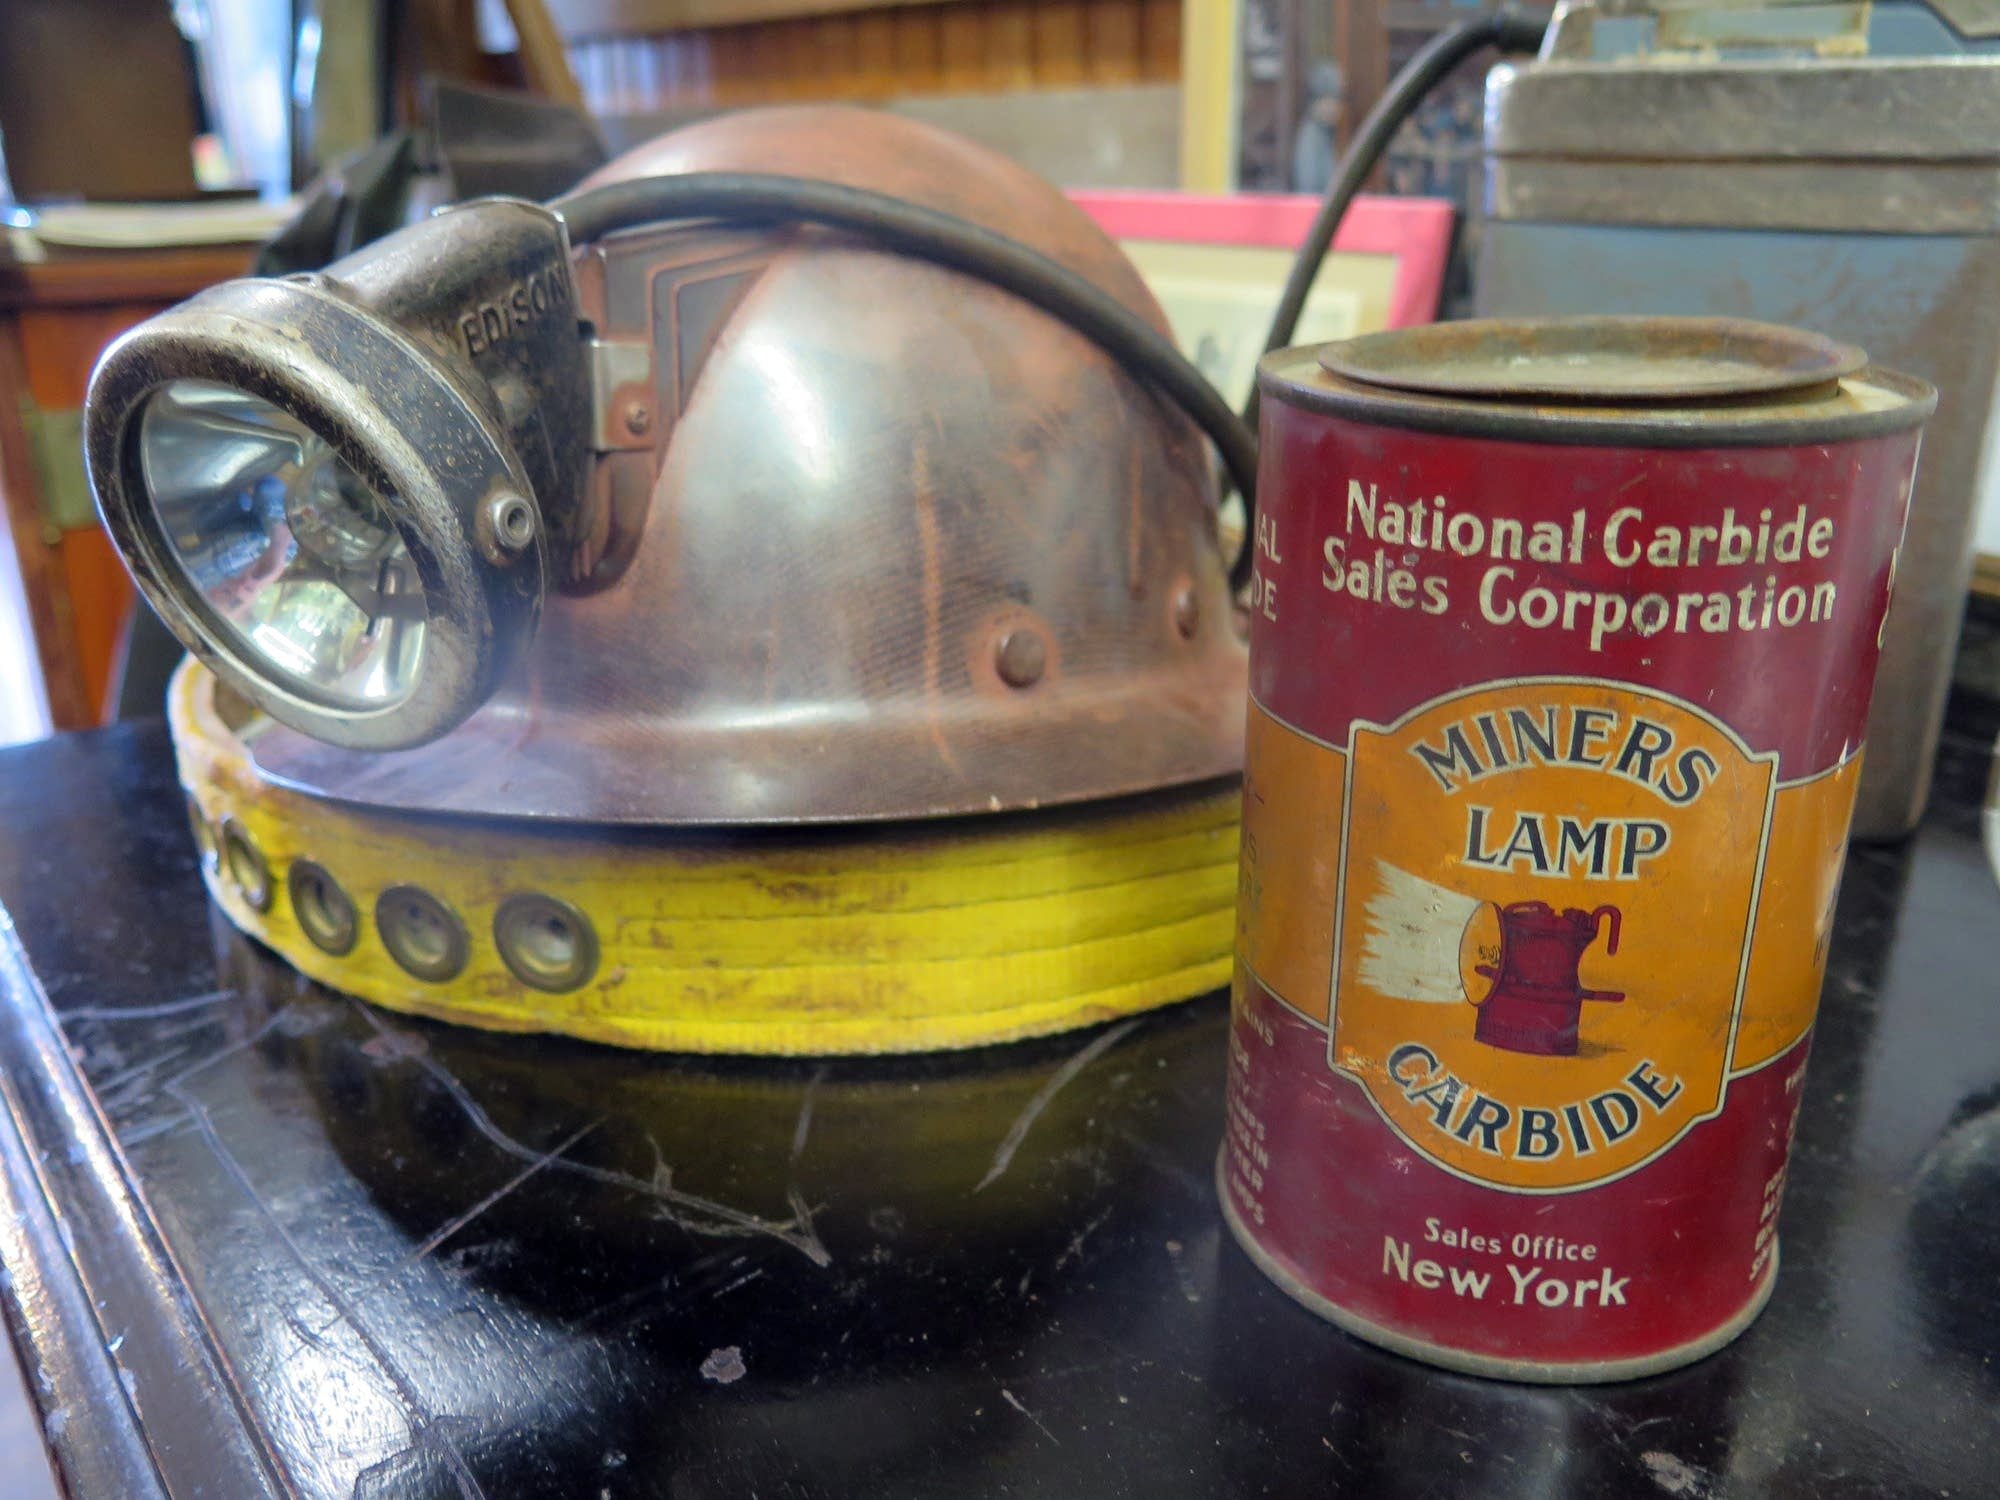 An old miner's helmet and a can of carbide.